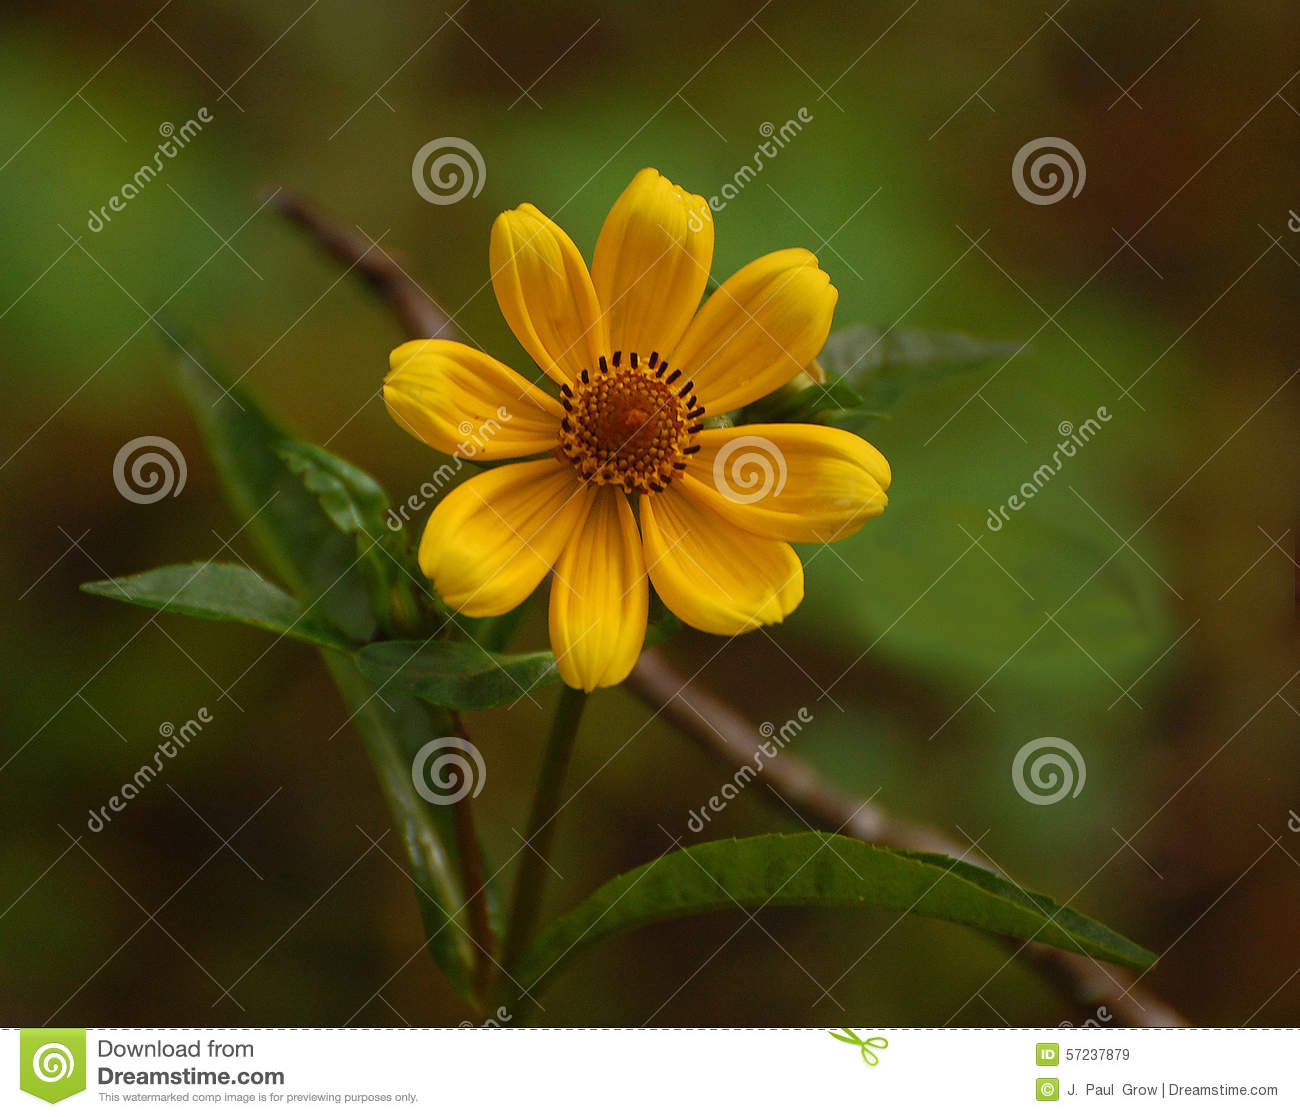 Tickseed sunflower stock image image of daisy tall 57237879 royalty free stock photo izmirmasajfo Gallery